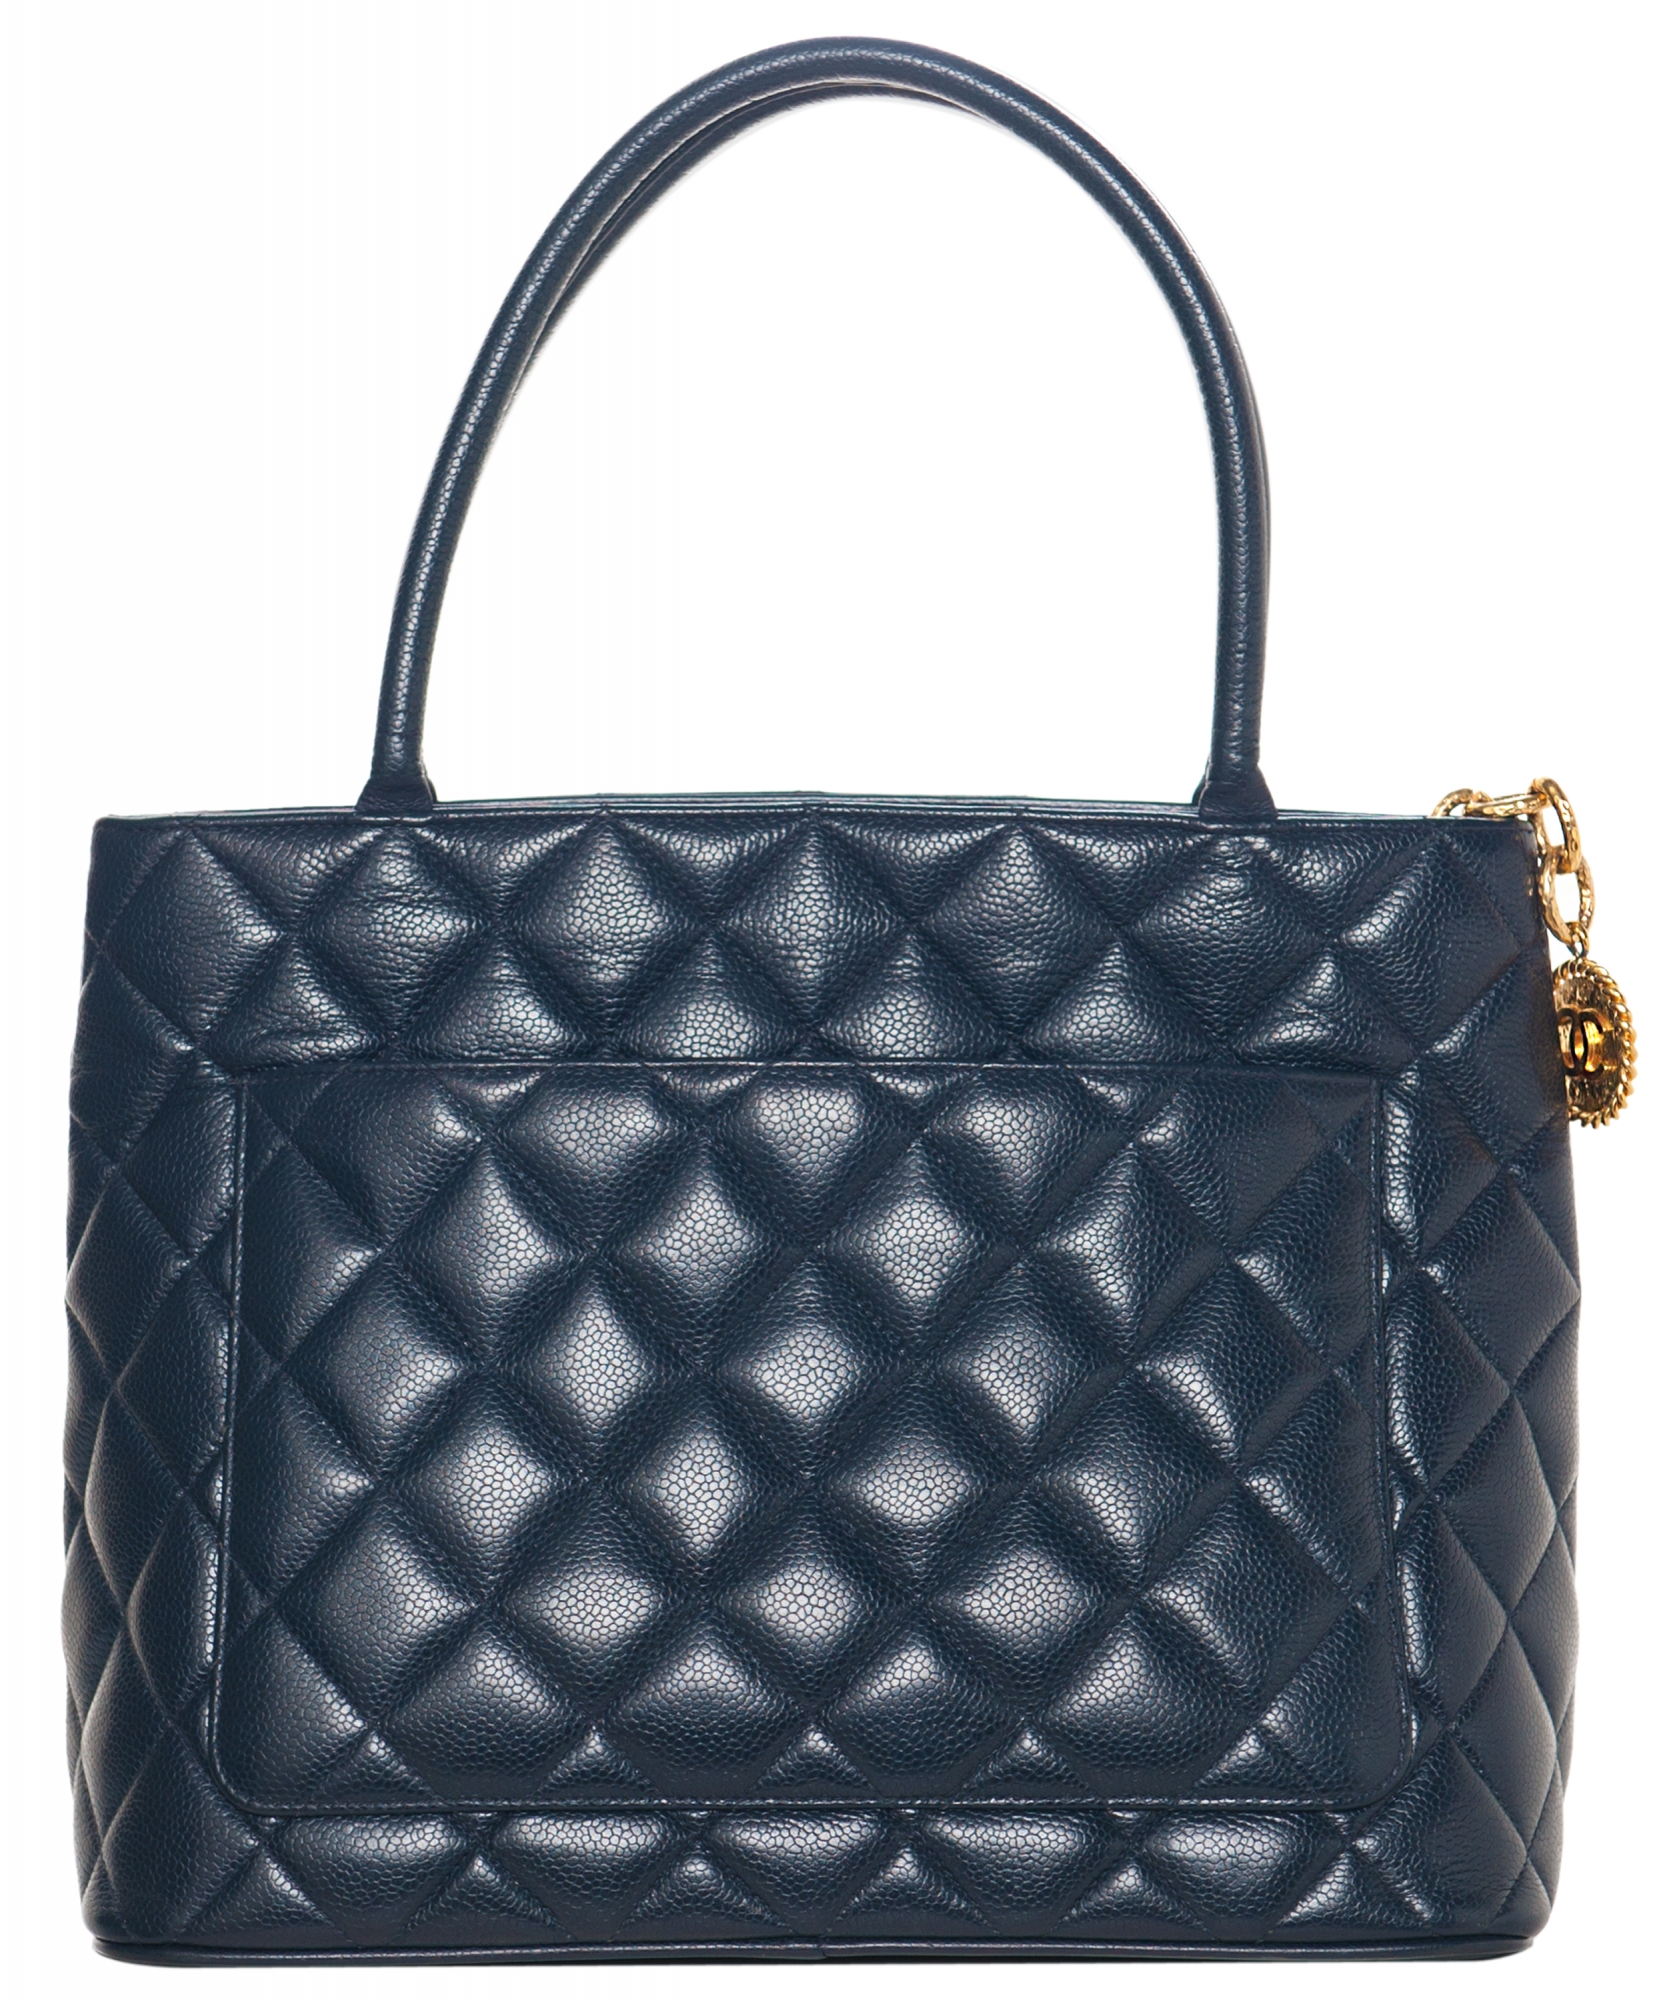 2ca22ca6822a4c Vintage Chanel Navy Blue Caviar Quilted Medallion Tote | La Doyenne